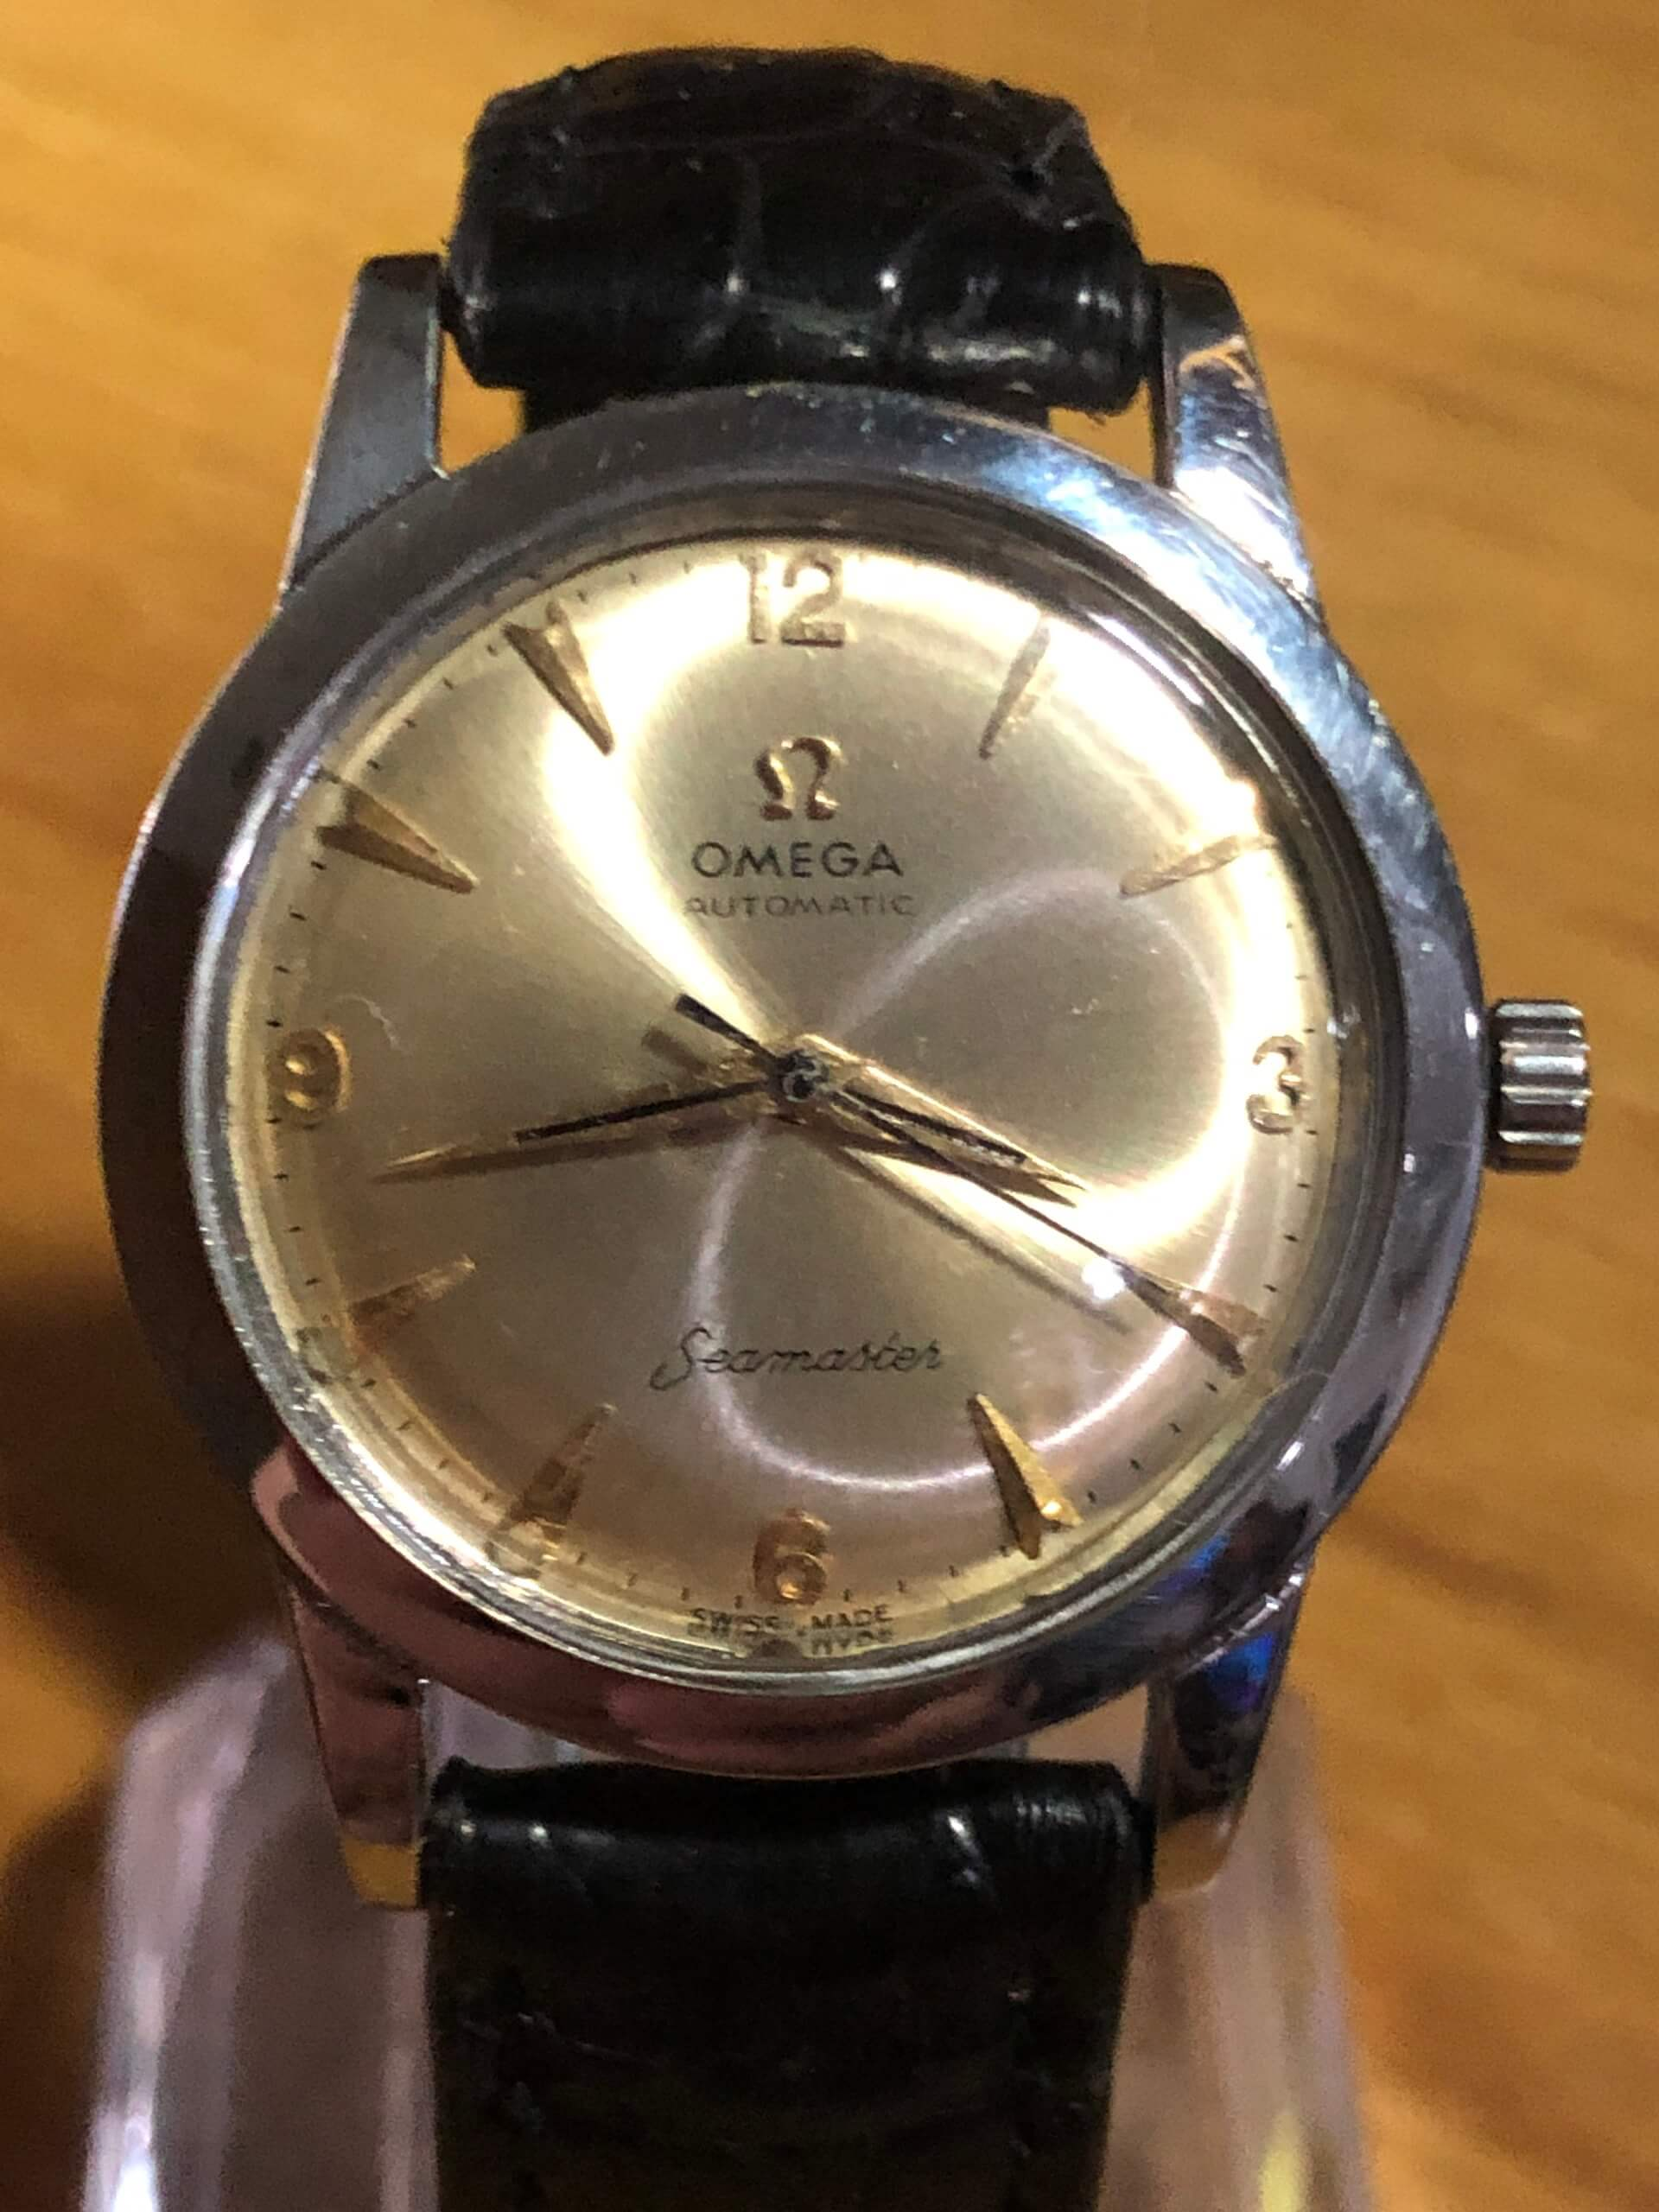 It is OMEGA SEAMASTER BUMPER Cal.354 VERY RARE